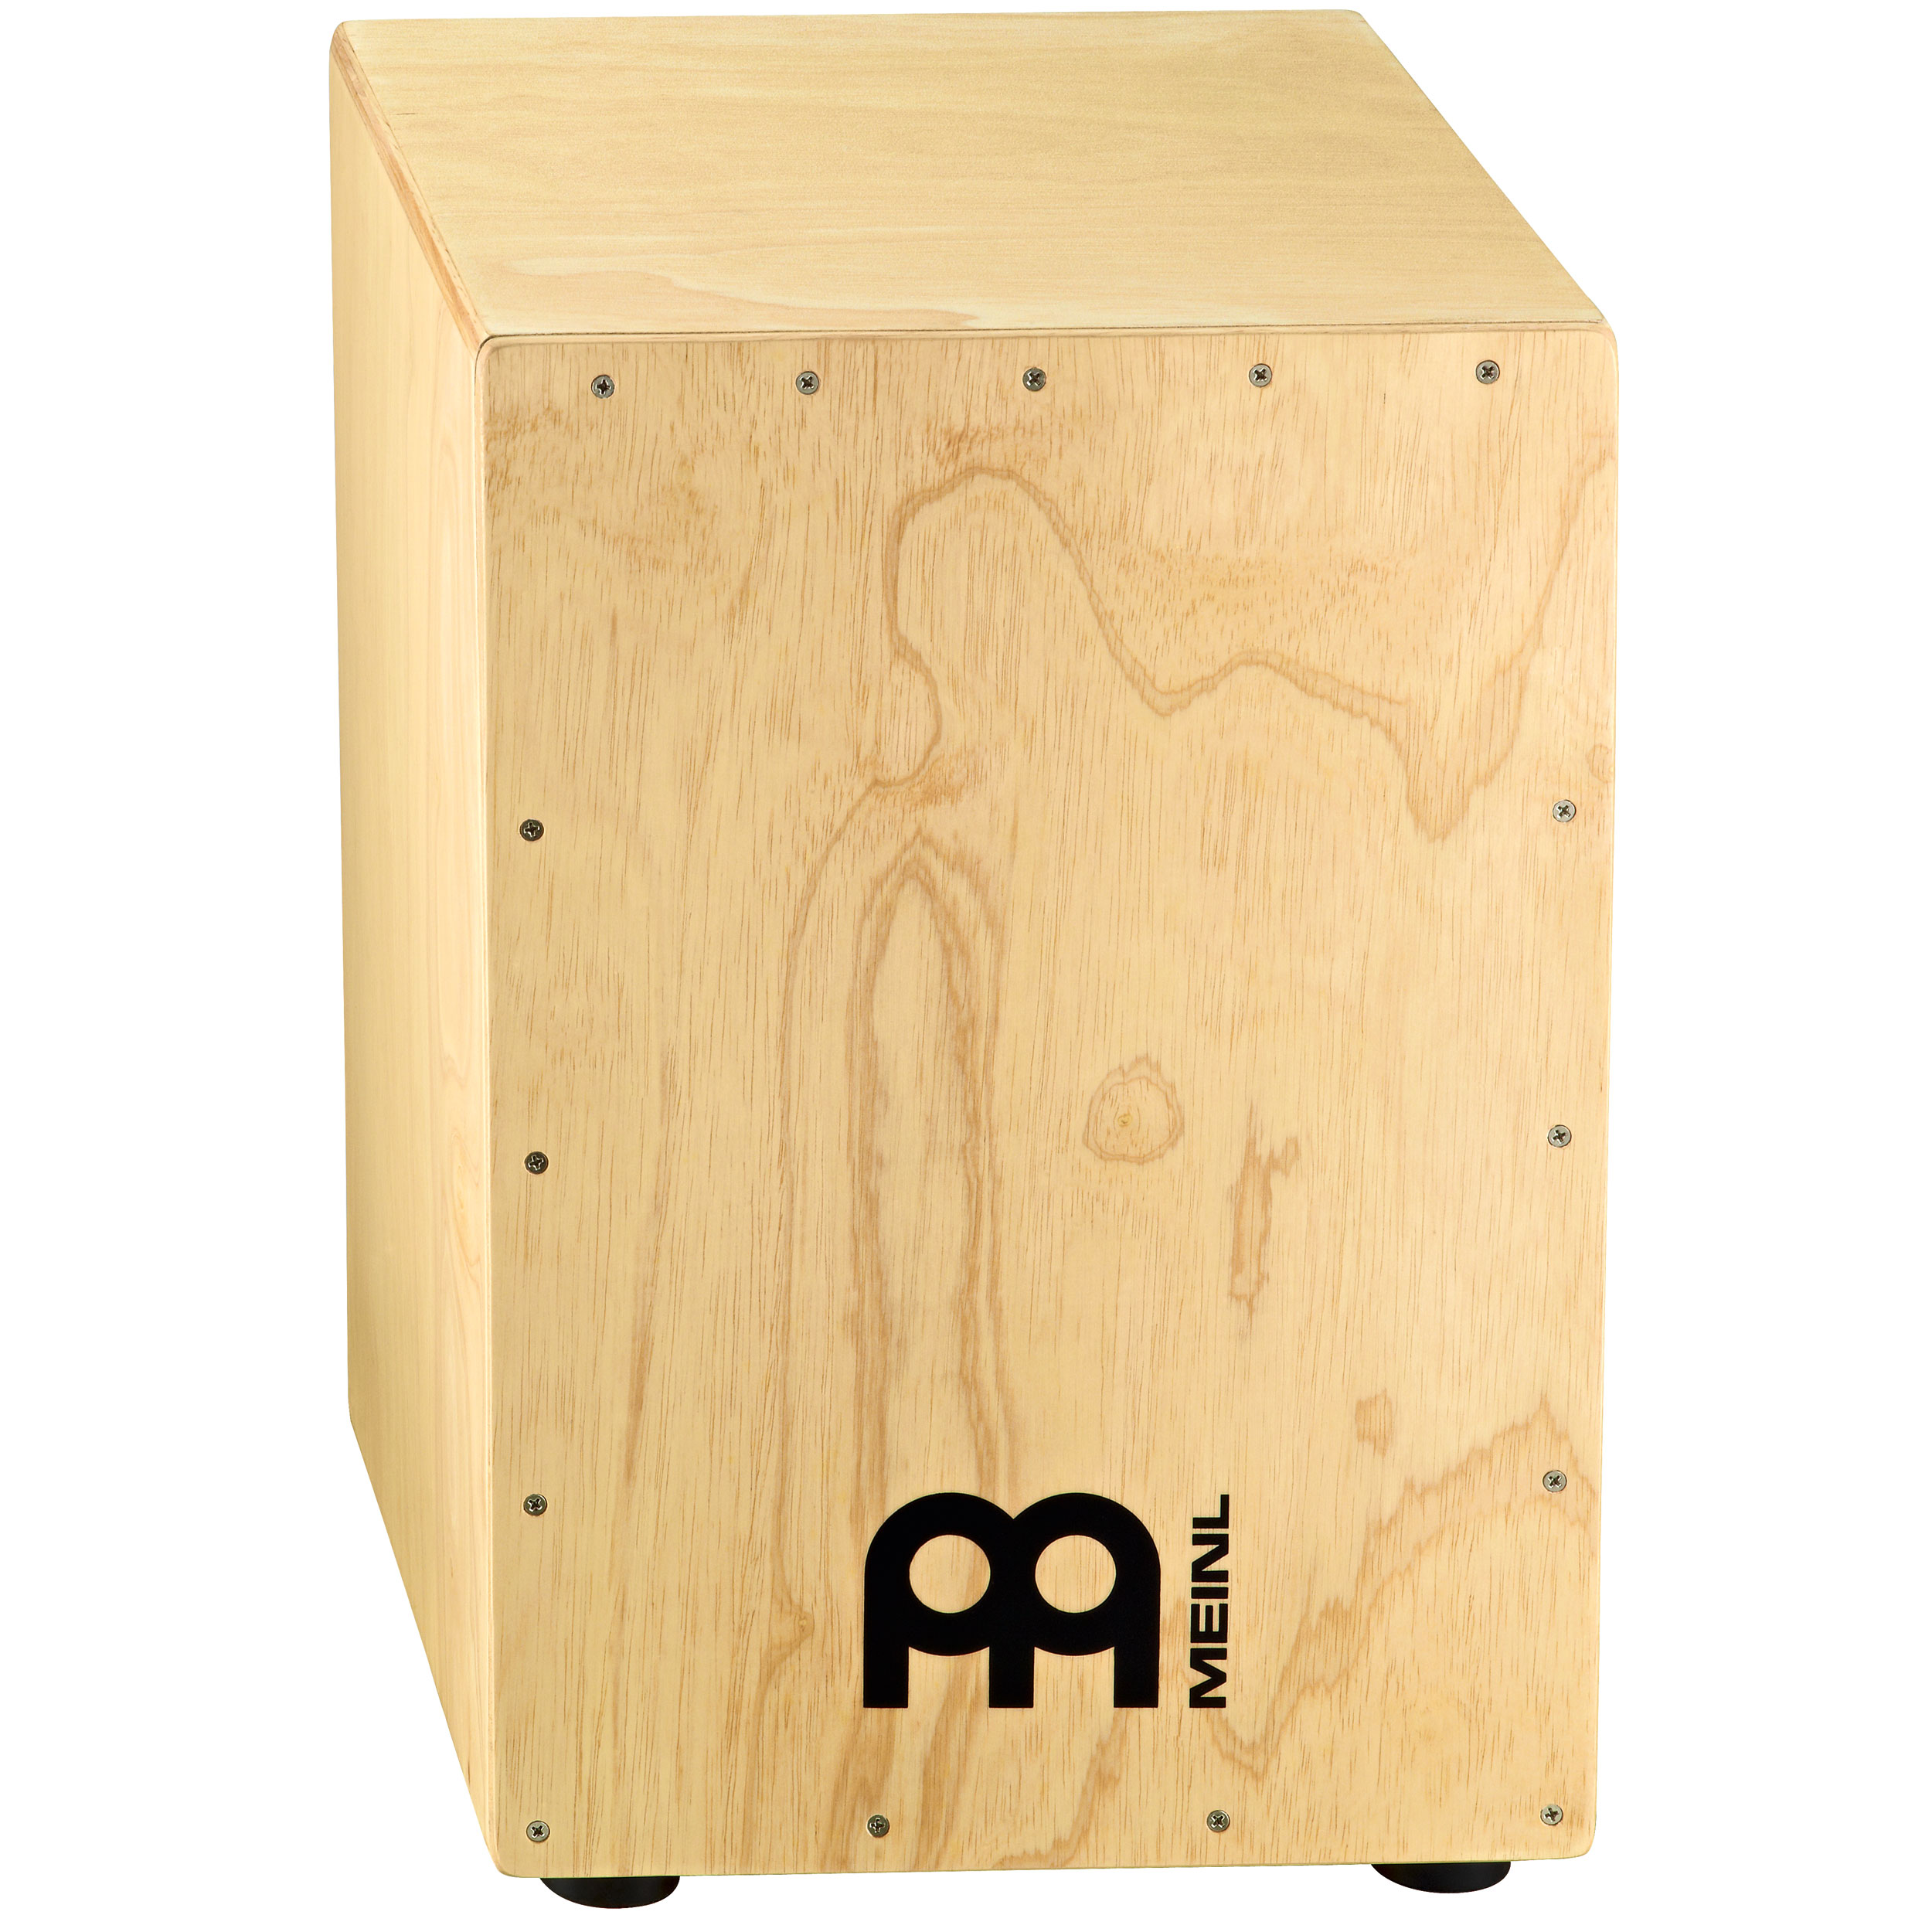 Meinl Headliner Large Cajon Natural Finish